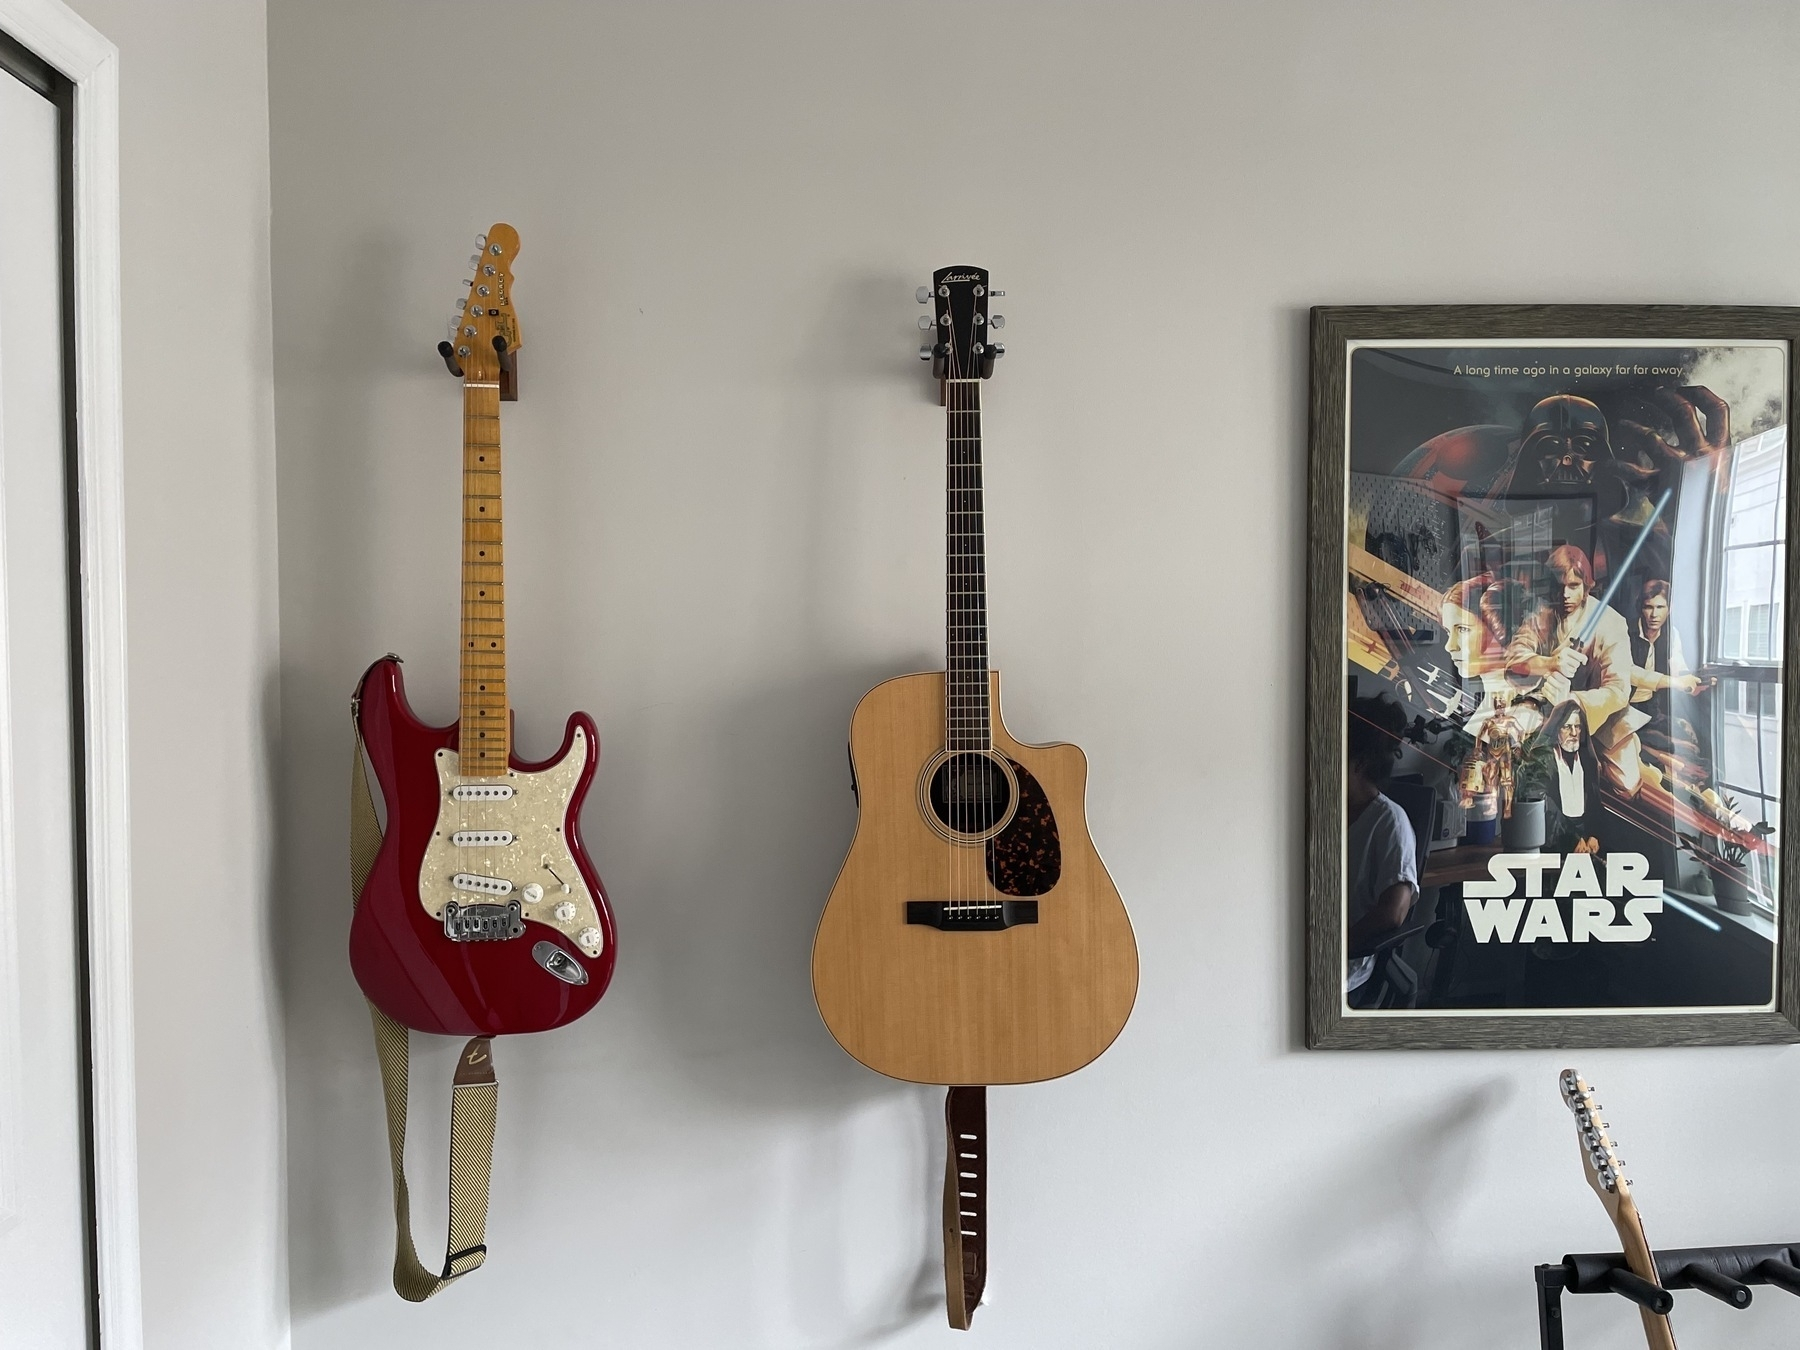 Electric guitar and acoustic guitar, wall mounted.